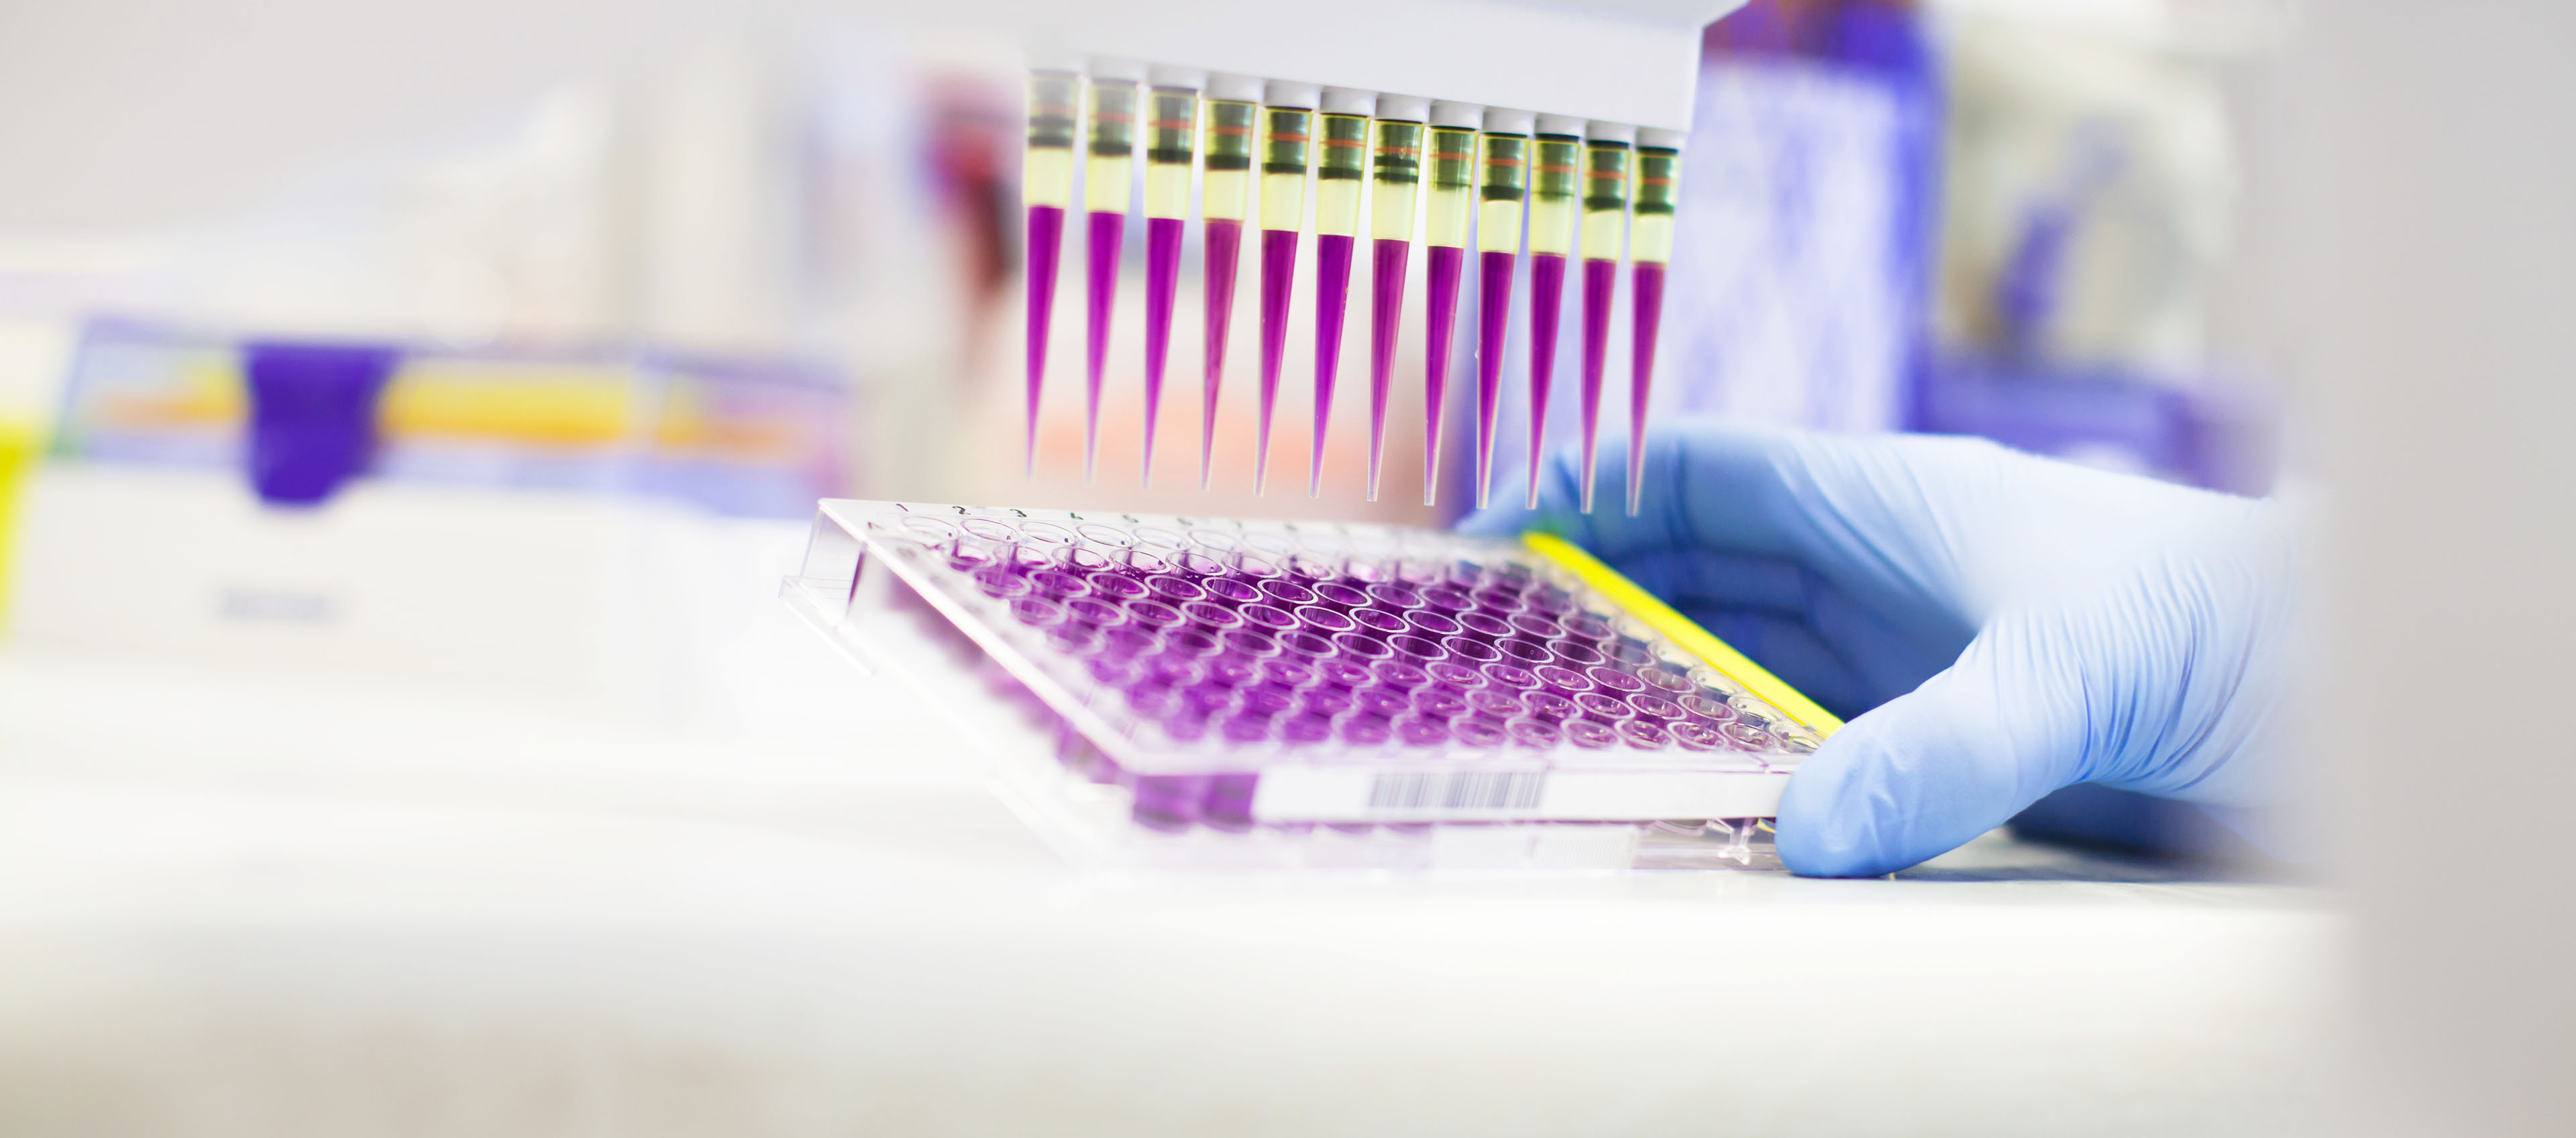 Promising market, but China's DTC genetic testing startups have to first overcome a few hurdles